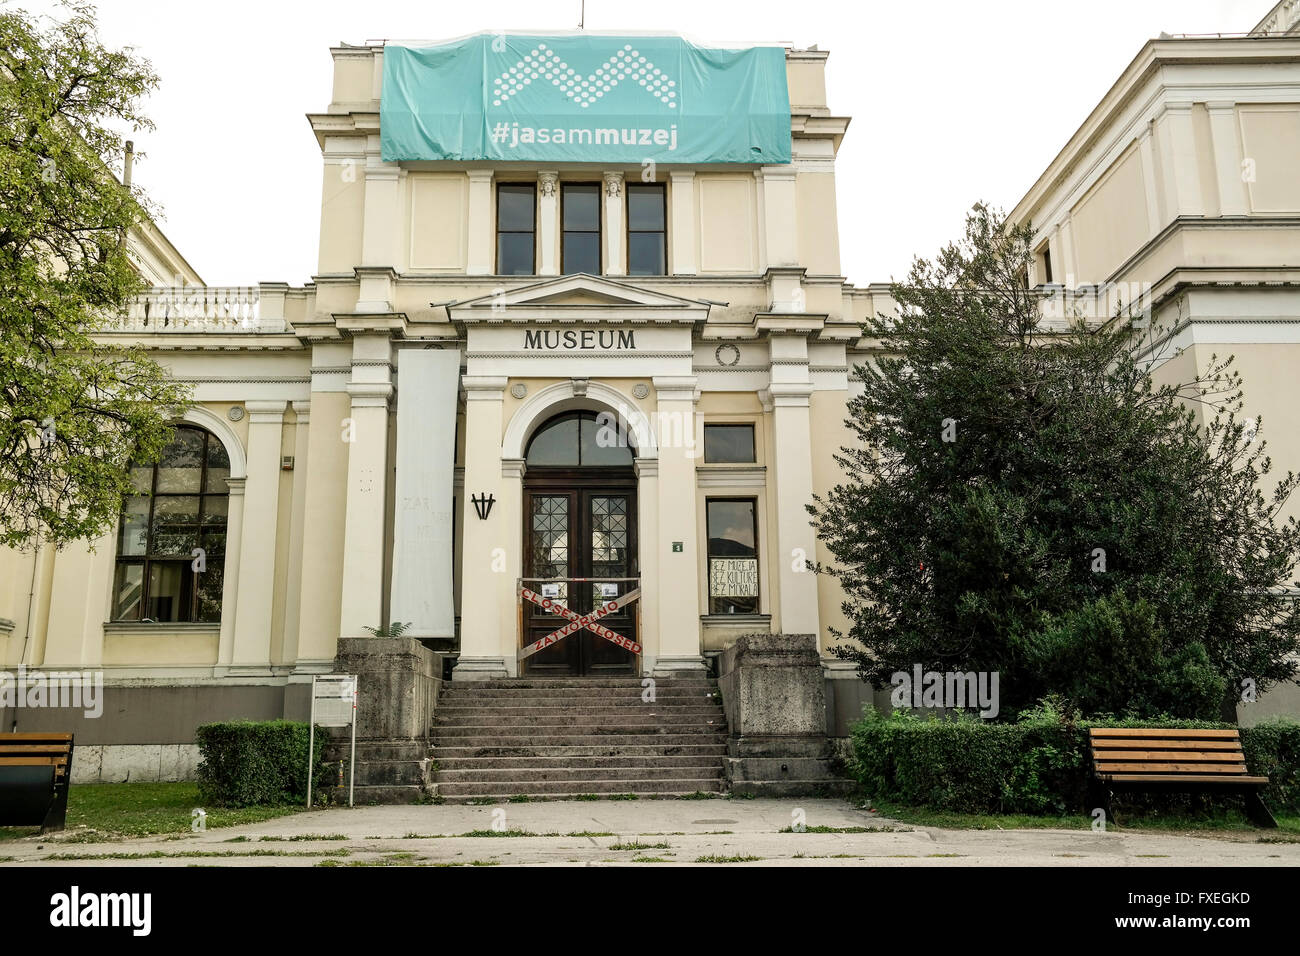 Entrance of the (closed) National Museum of Bosnia and Herzegovina. - Stock Image